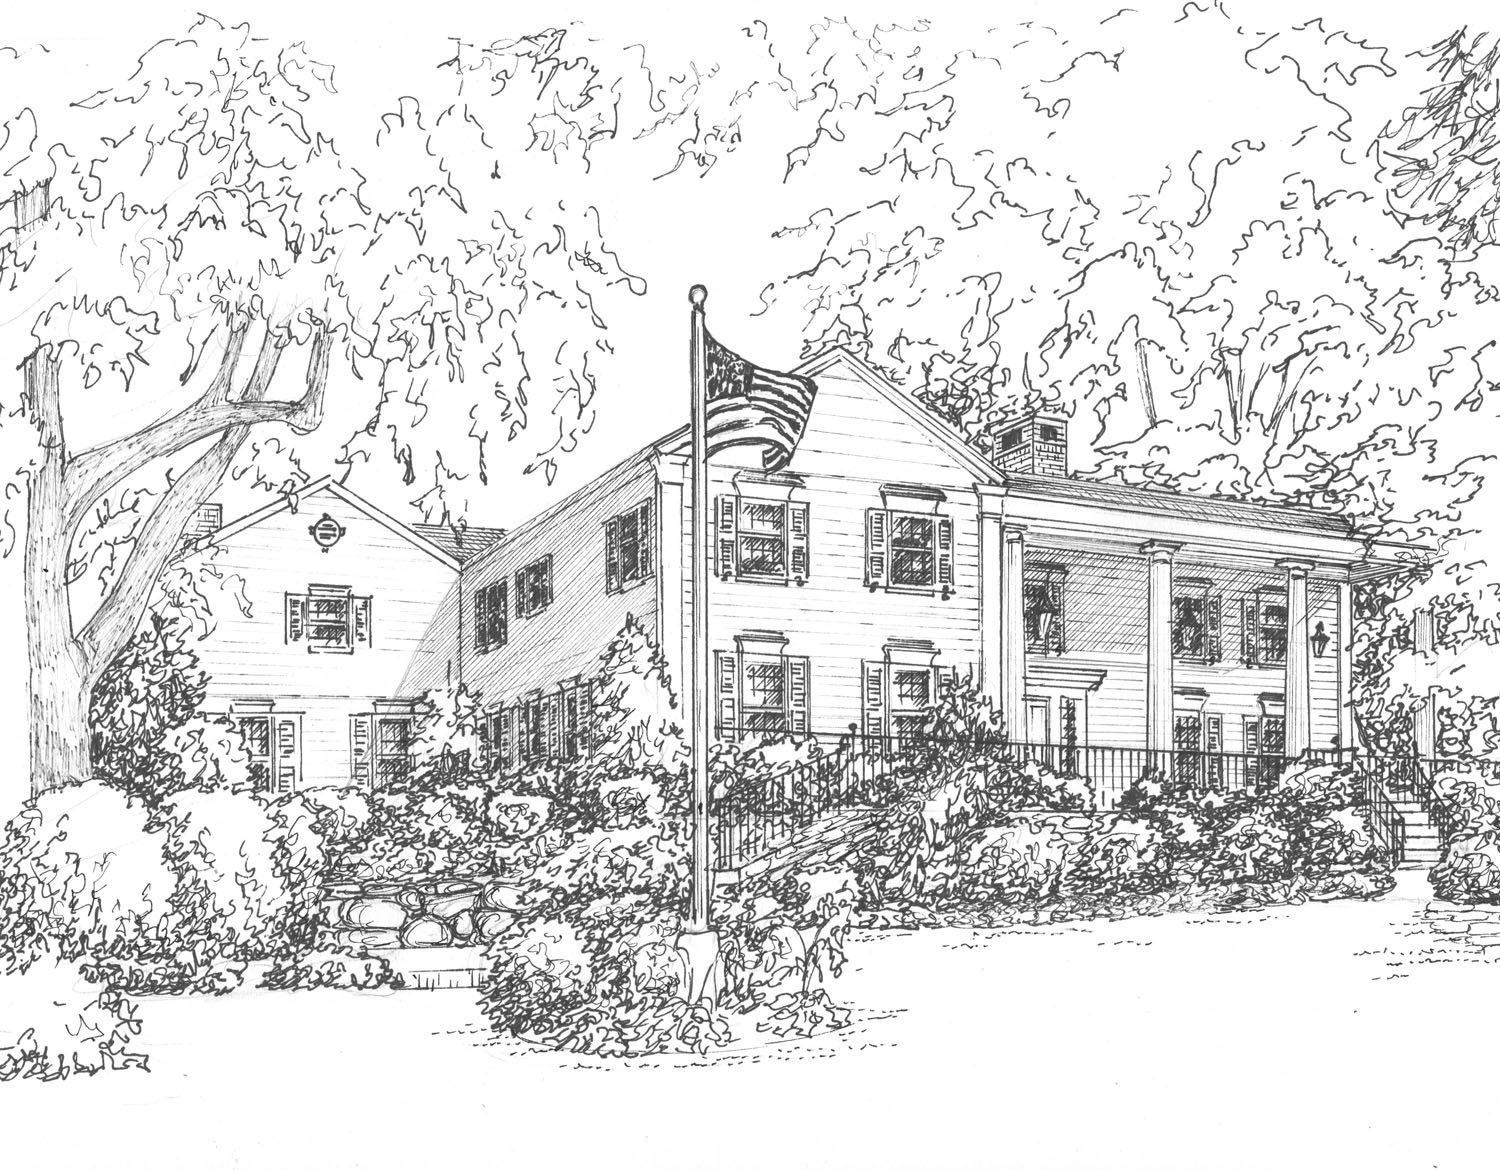 custom ink house portrait your home hand drawn in ink zoom